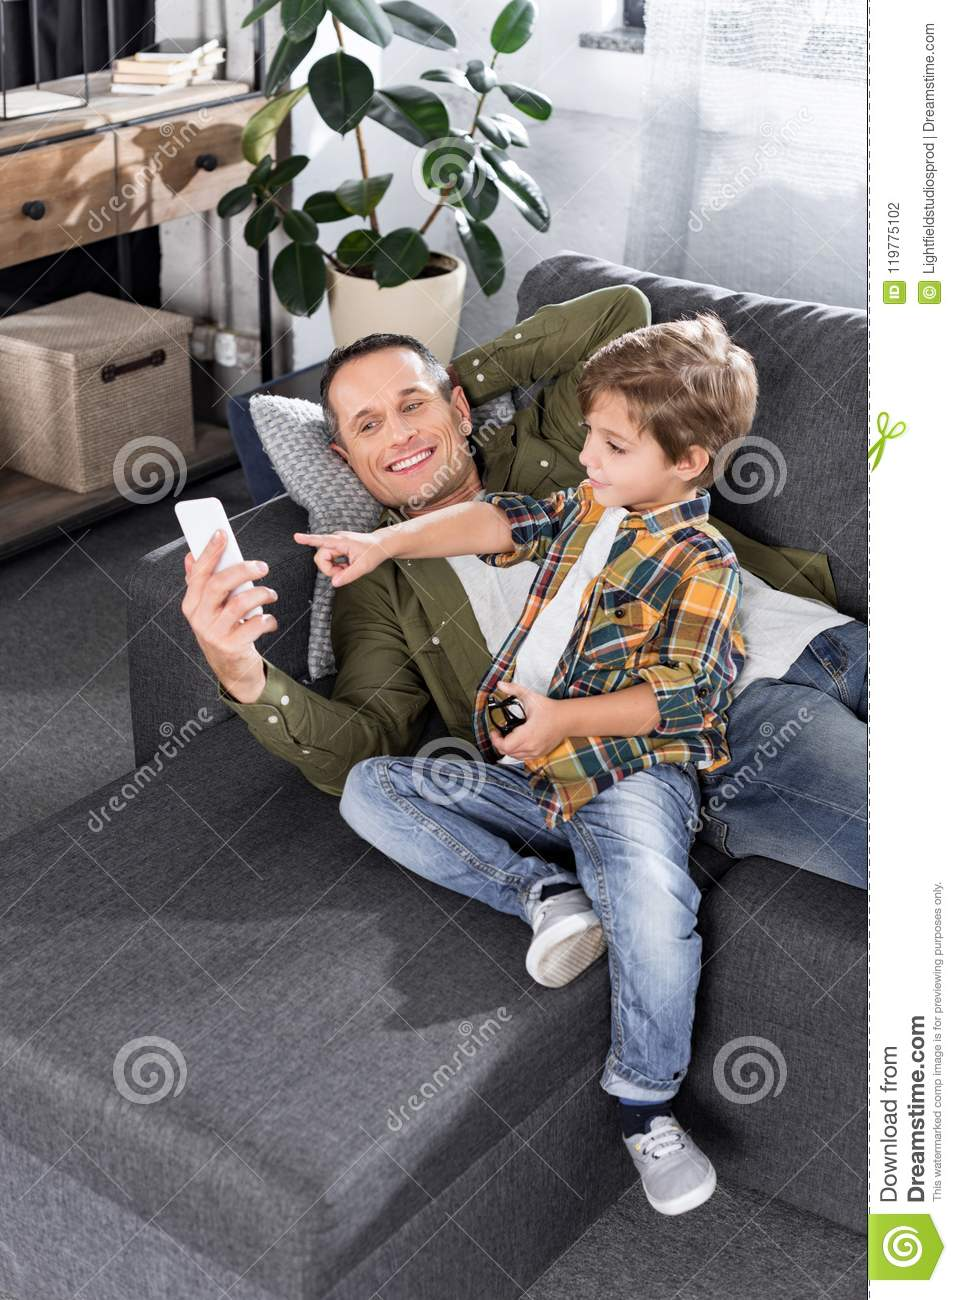 smiling father and little son using smartphone while resting on sofa